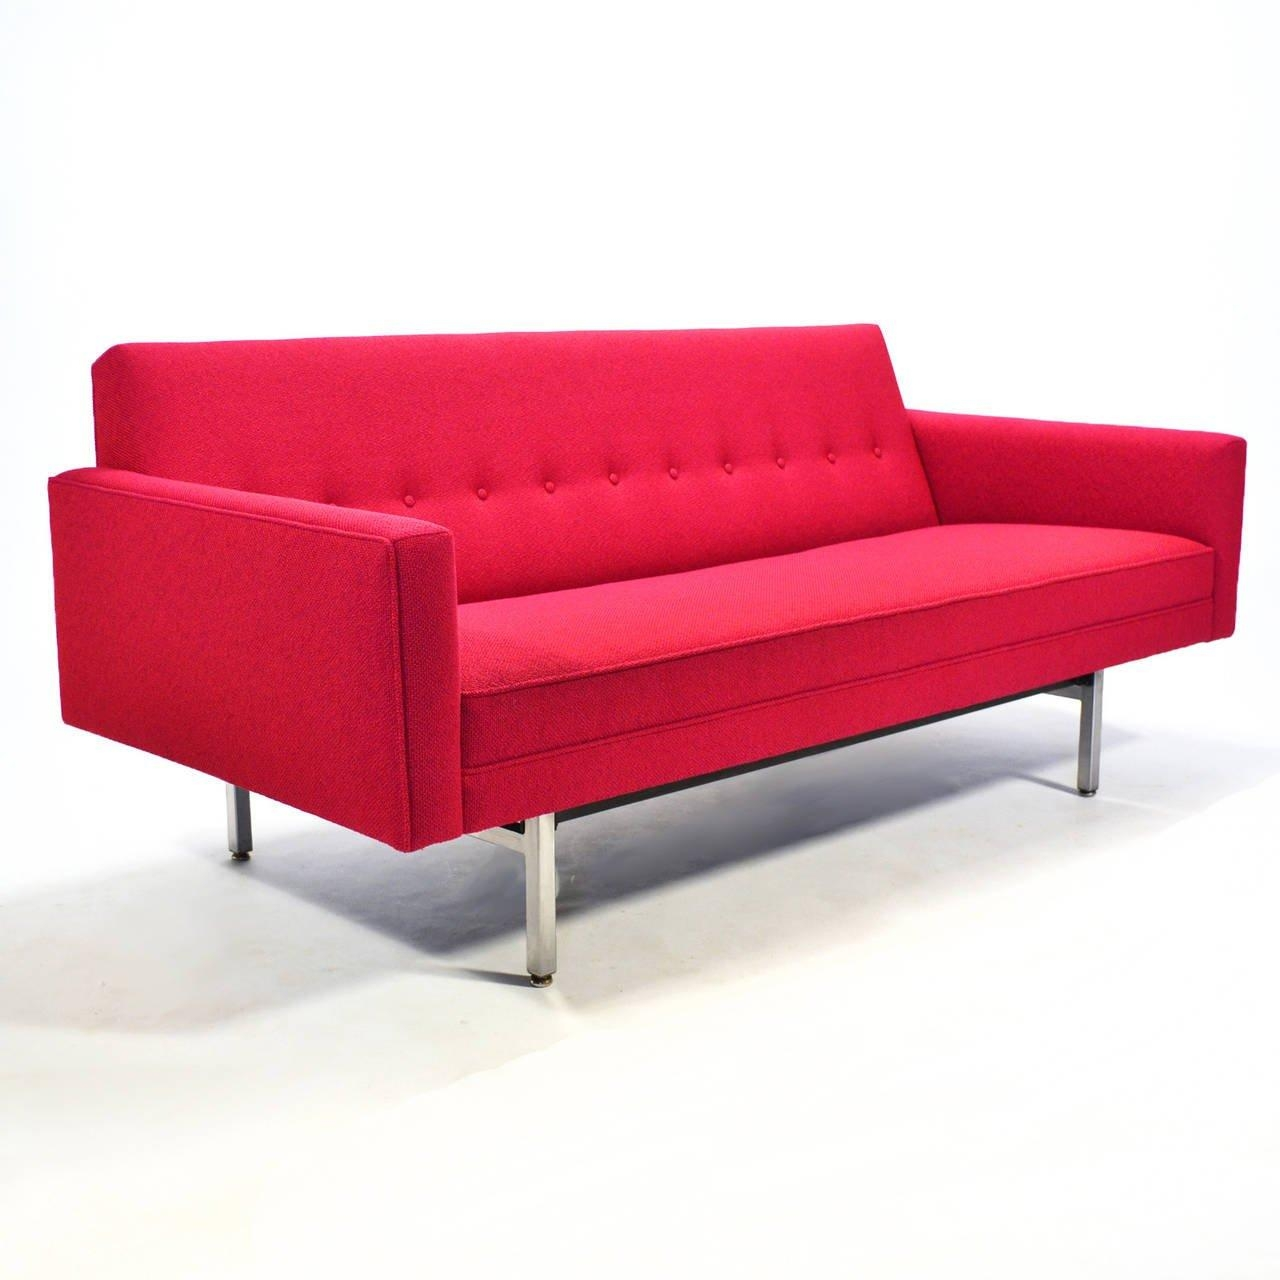 George Nelson Modular Group Sofa For Sale At 1Stdibs Within George Nelson Sofas (Image 6 of 20)